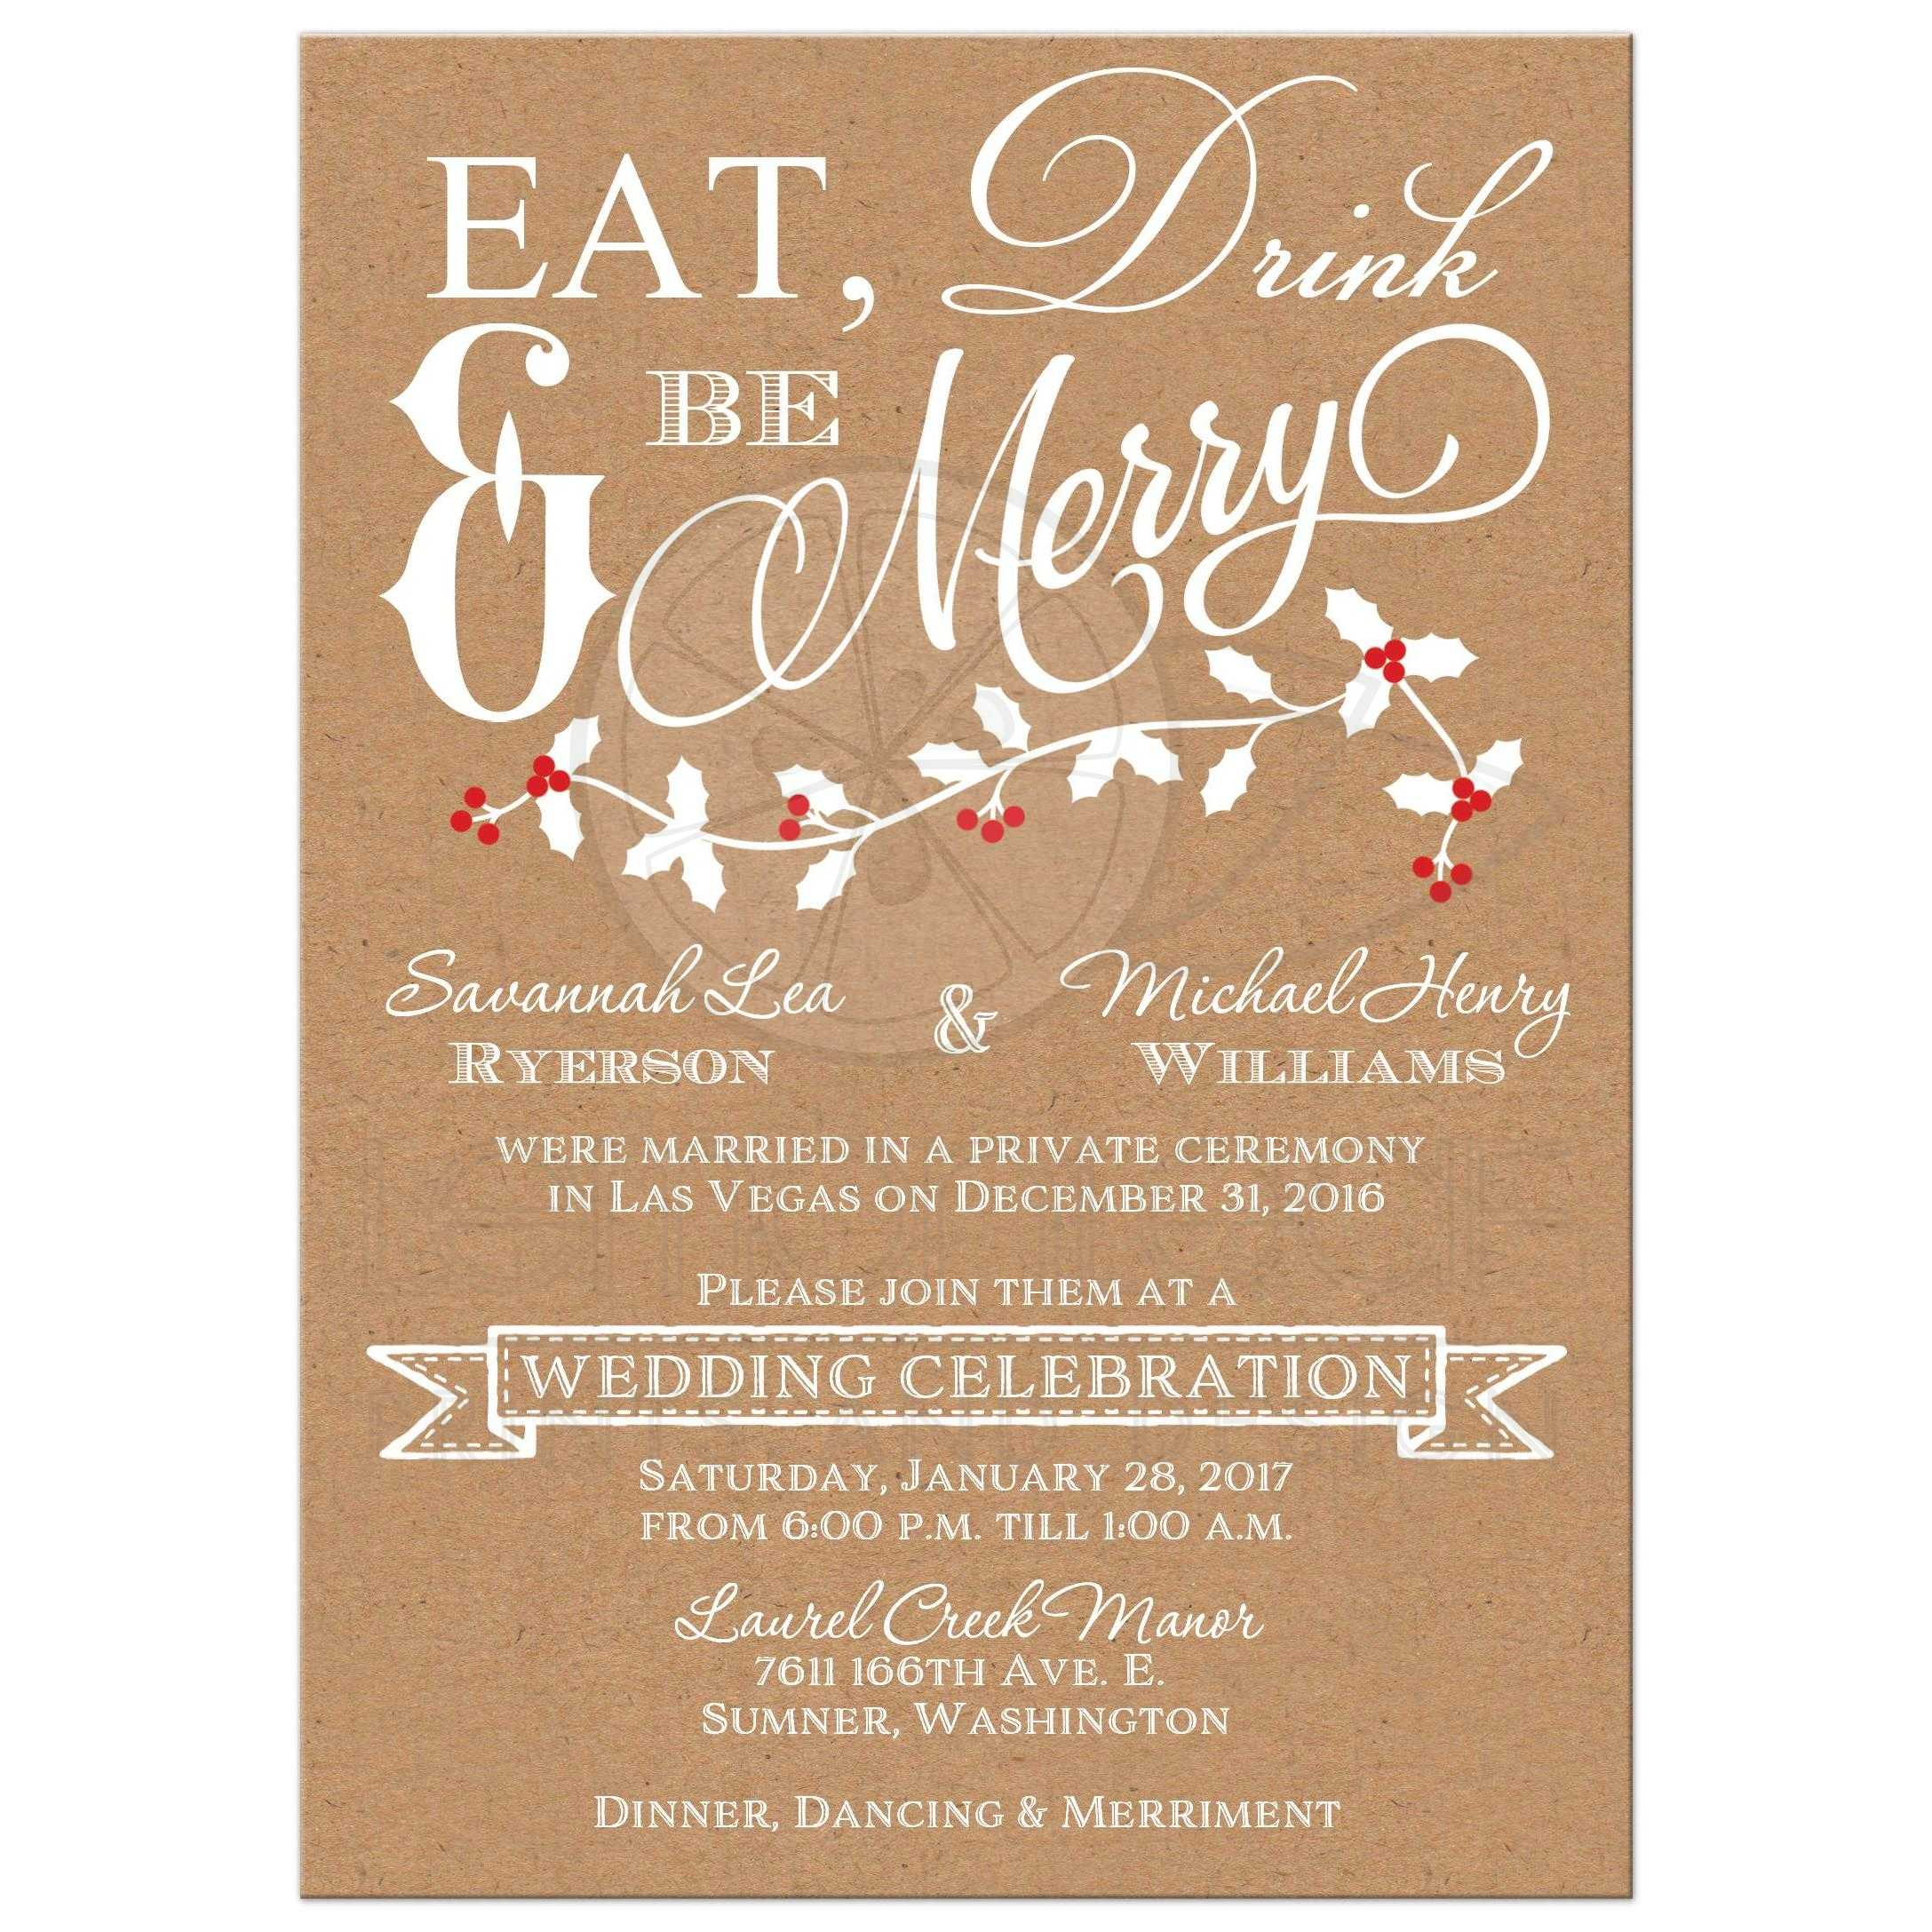 Eat Drink And Be Merry Post Wedding Reception Invitation With Holly Leaves Red